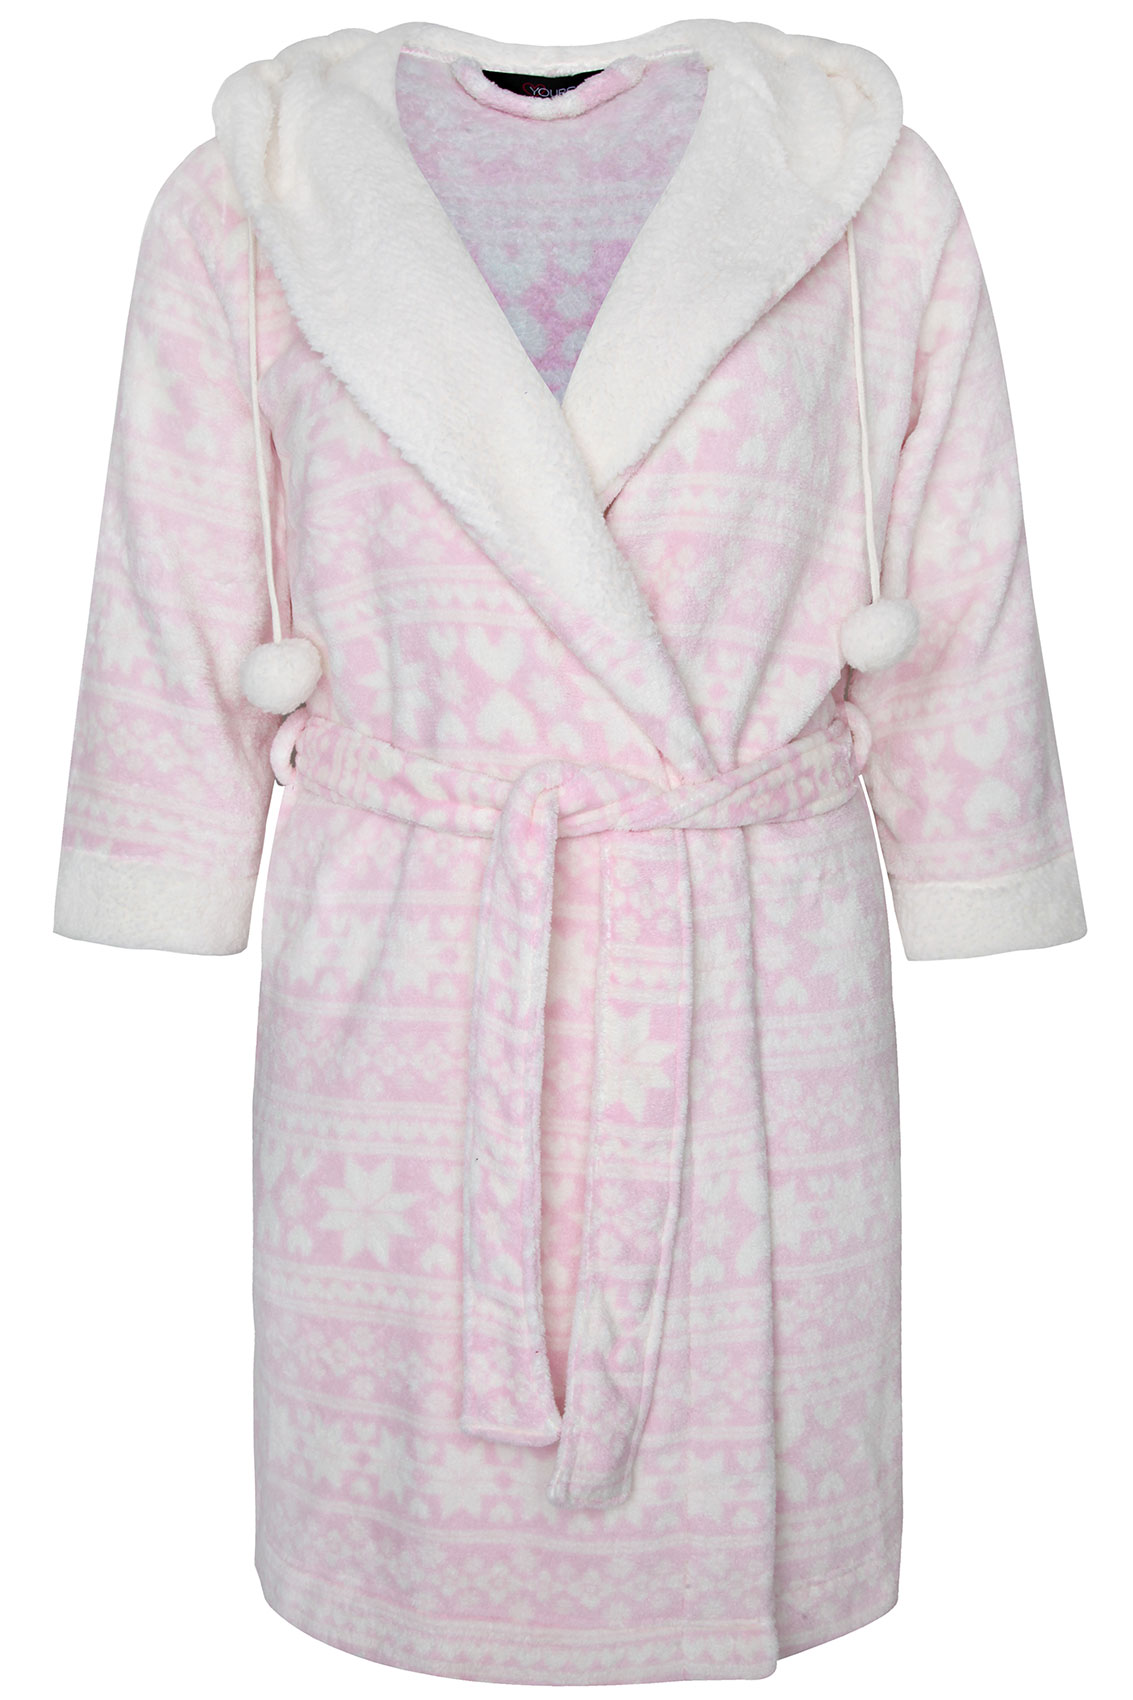 Women's Dressing Gowns & Robes. Items Per Page. Sort By Bright Pink Textured Dressing Gown. £20 - £ Animal Textured Dressing Gown. £ White Cotton Waffle Robe. £ White Cotton Paisley Robe. £ Blue Cloud Carved Robe. £ Navy Lightweight Robe.